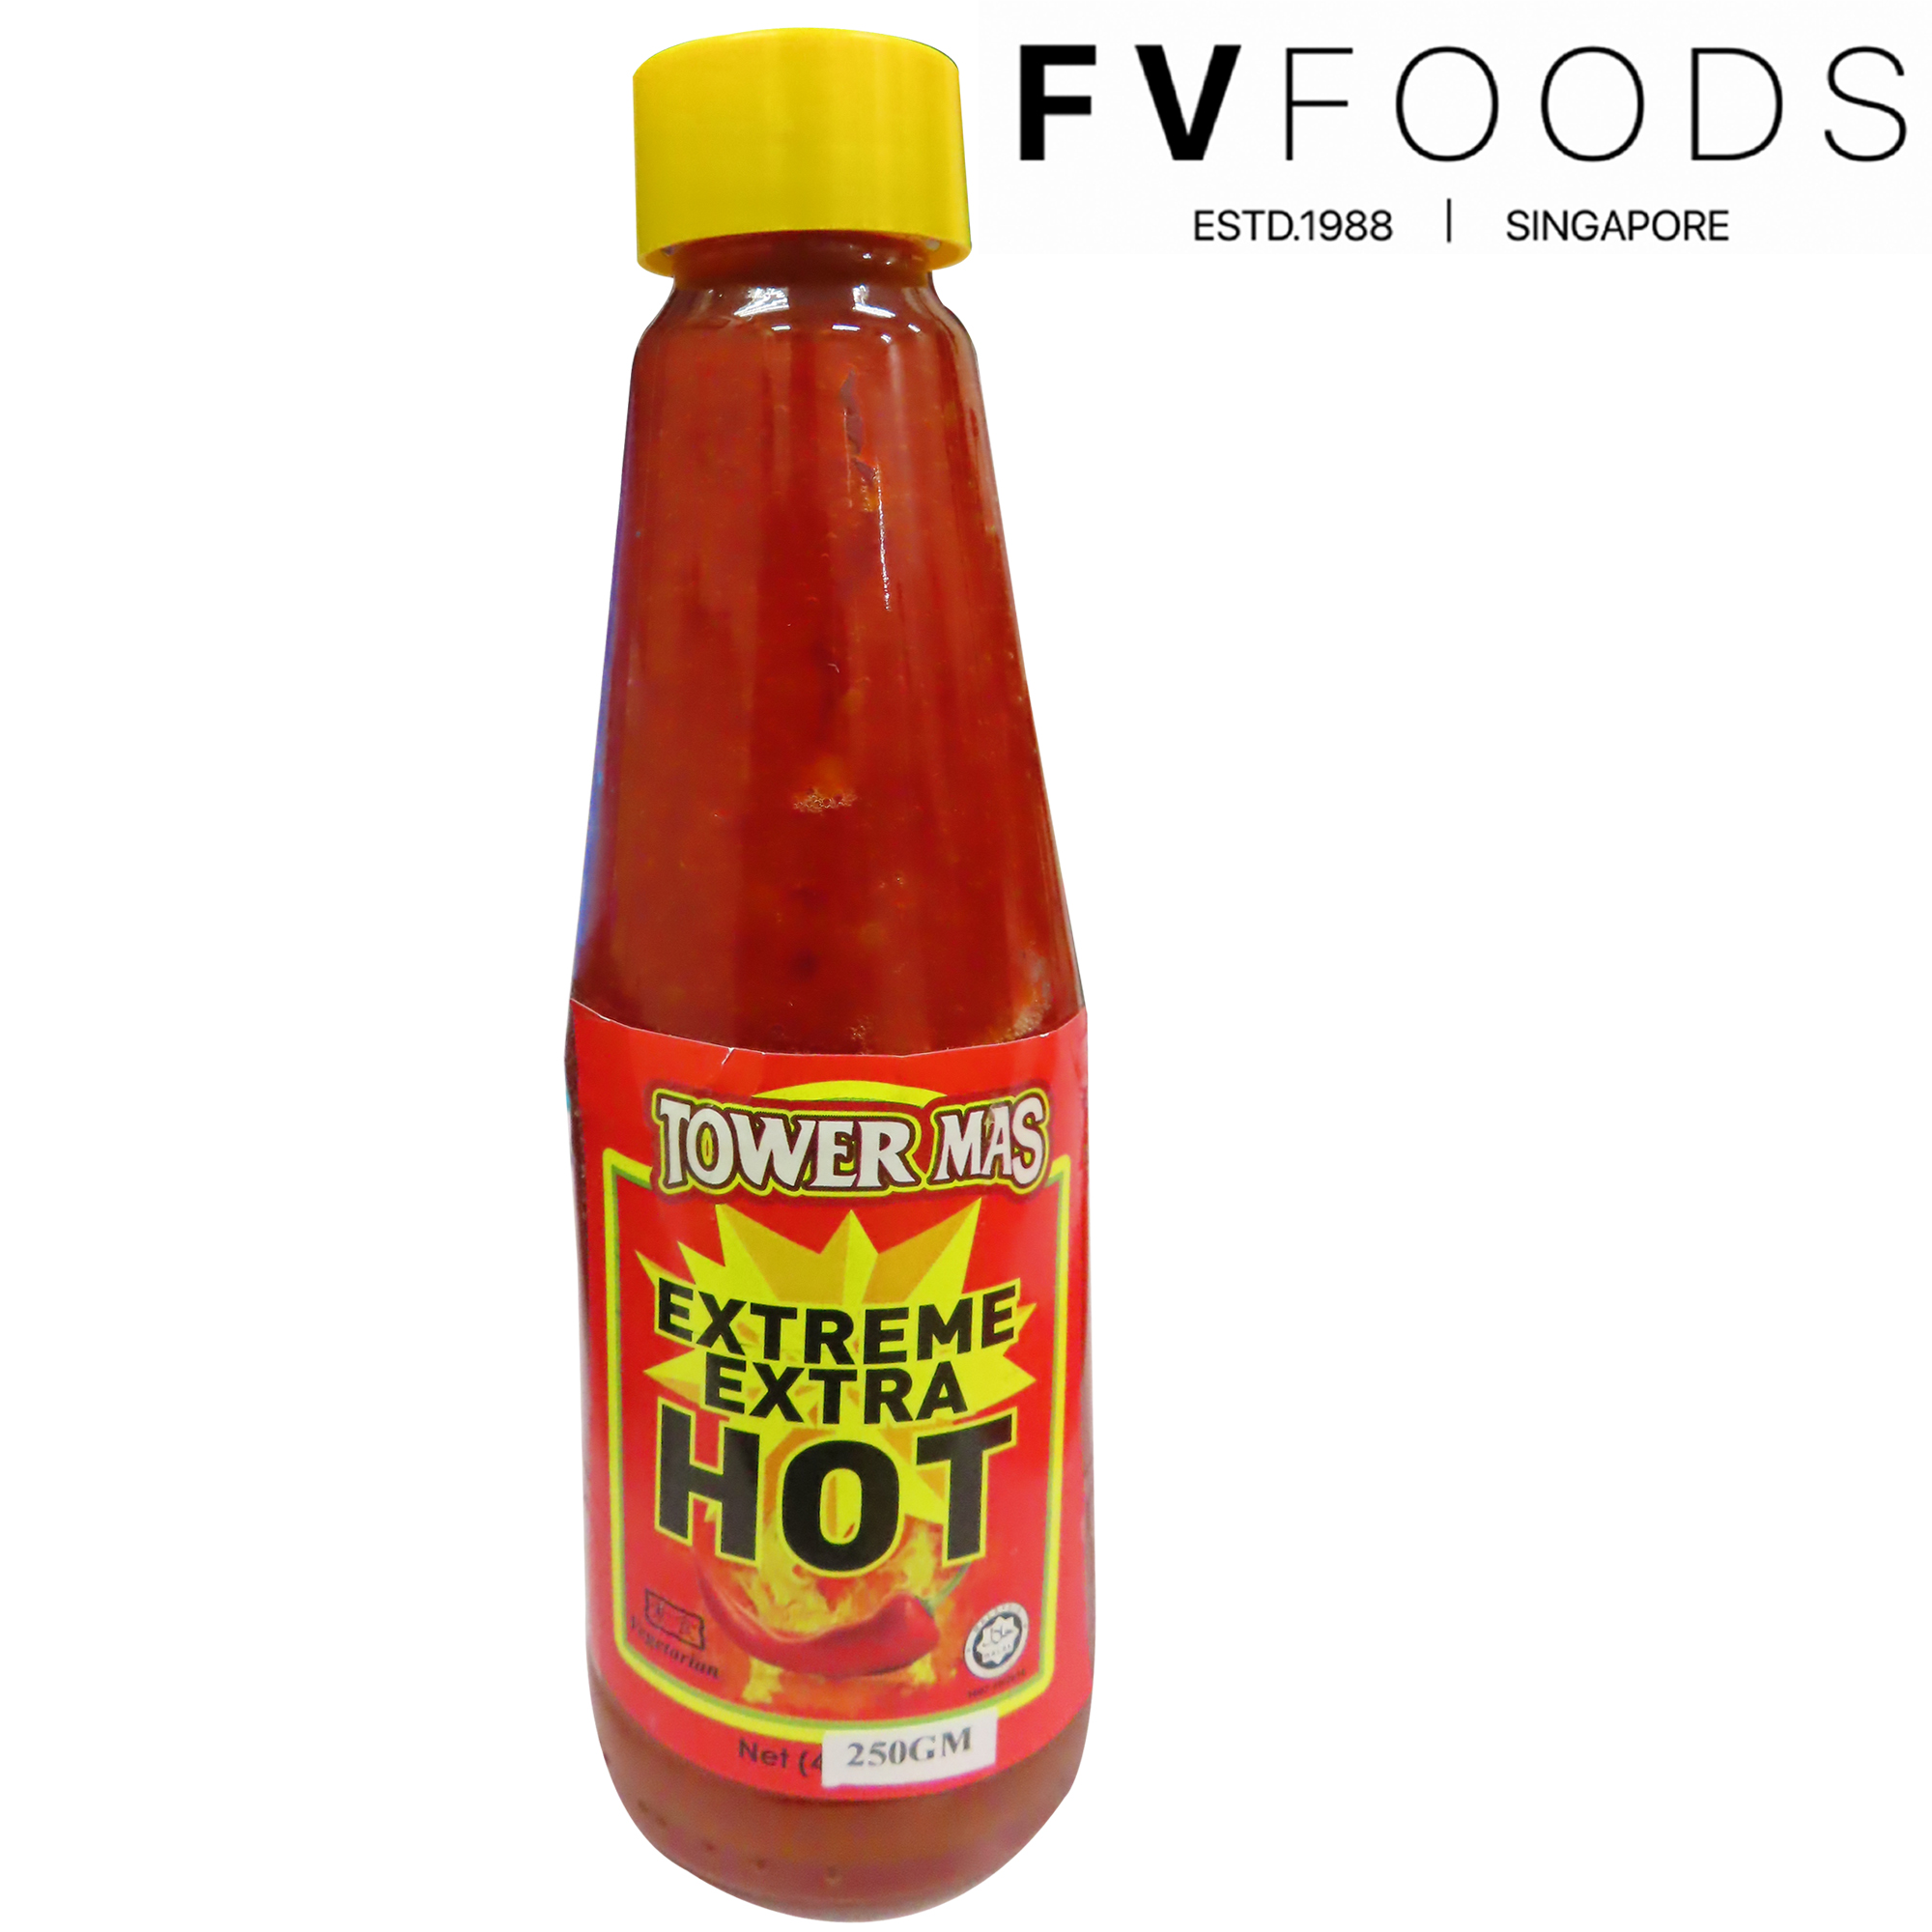 Image Tower Mas Extreme Extra Hot Chili 金塔 - 特辣辣椒 250grams